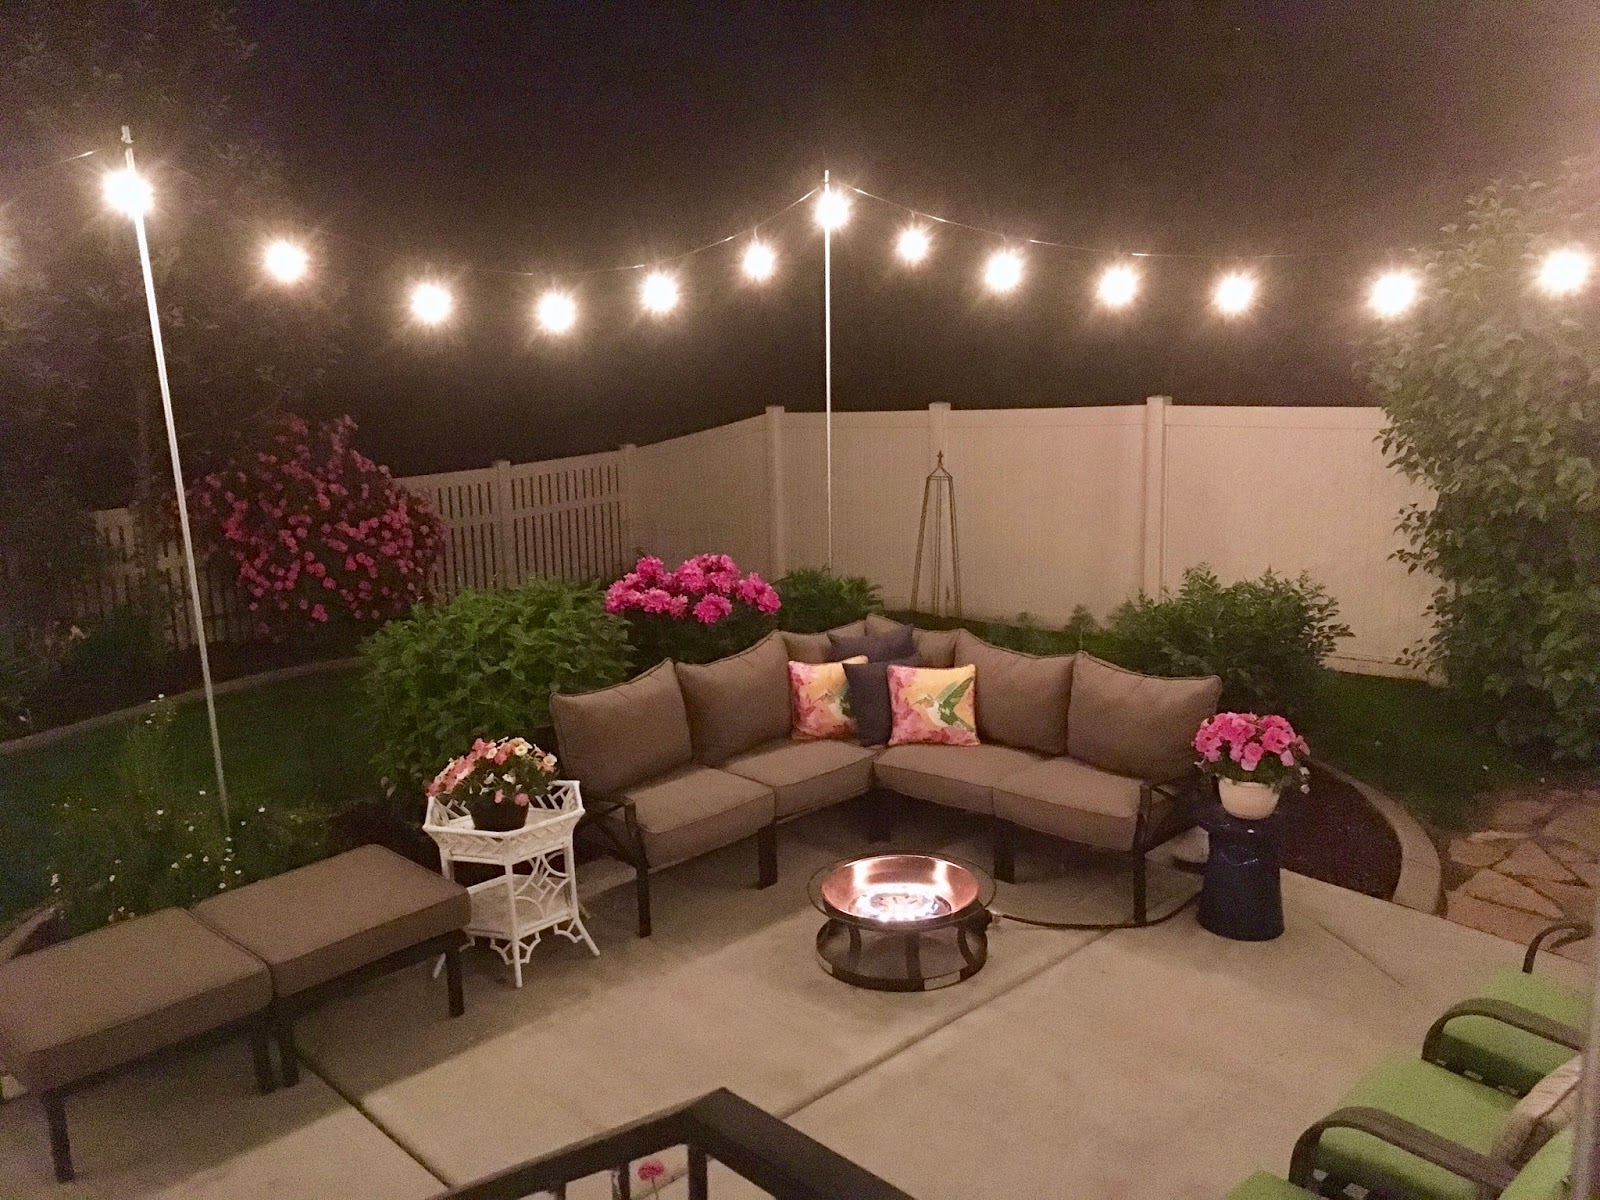 Restlessrisa outdoor yard lights for under 150 i researched aloadofball Choice Image